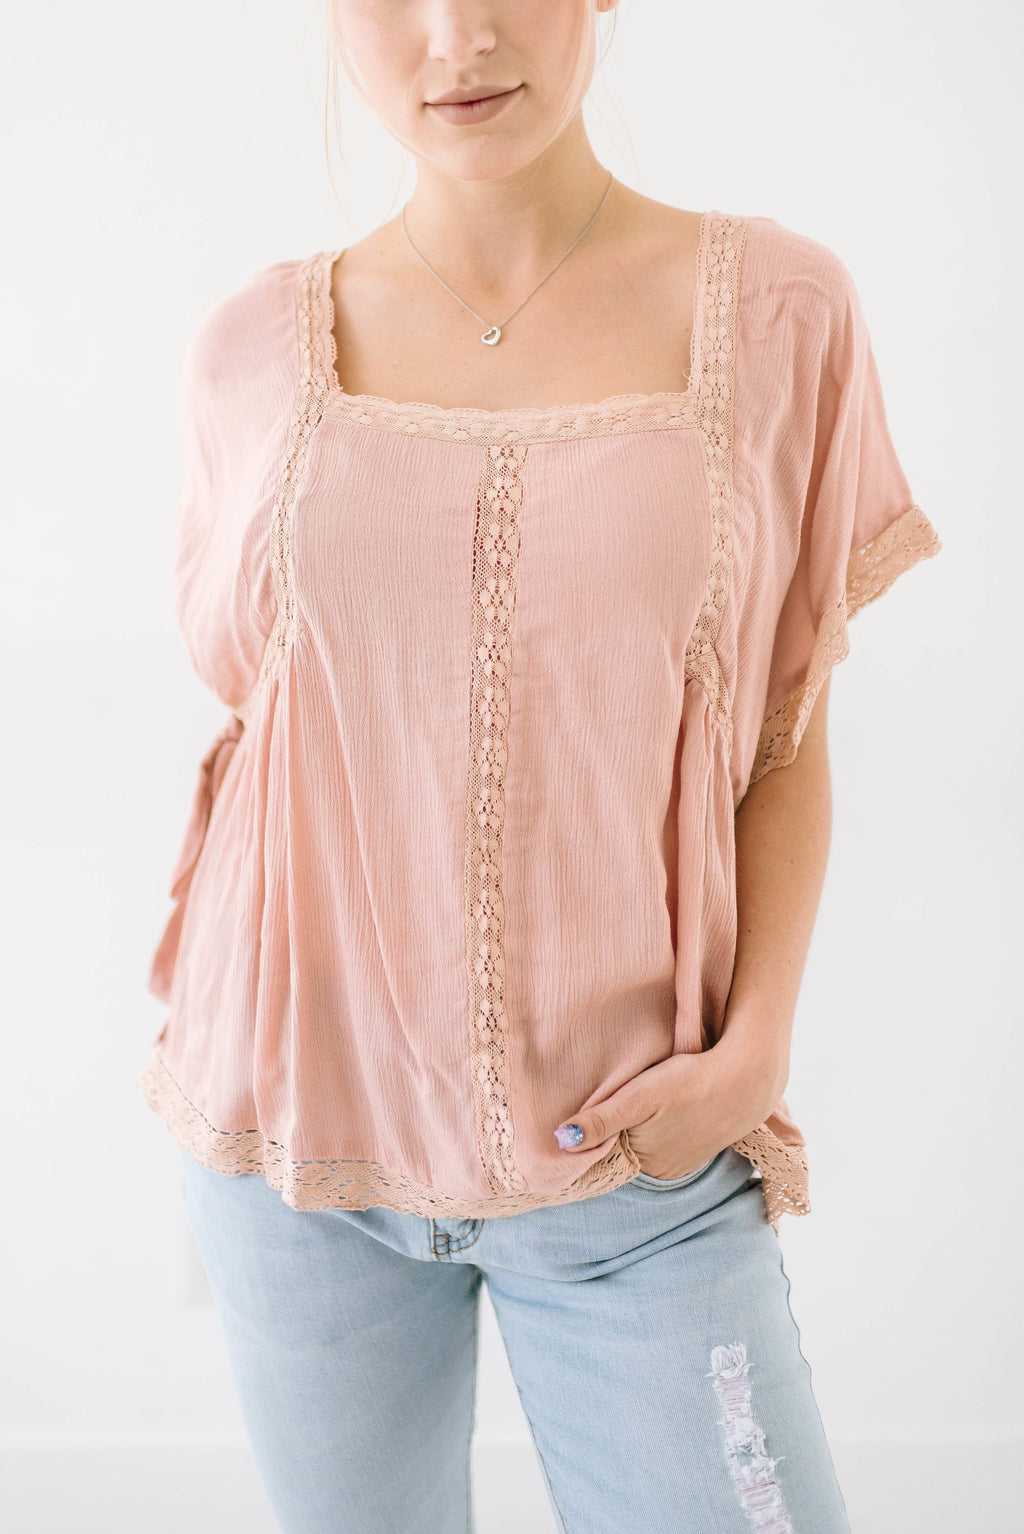 Pretty in Pink Peasant Top - ALL SALES FINAL